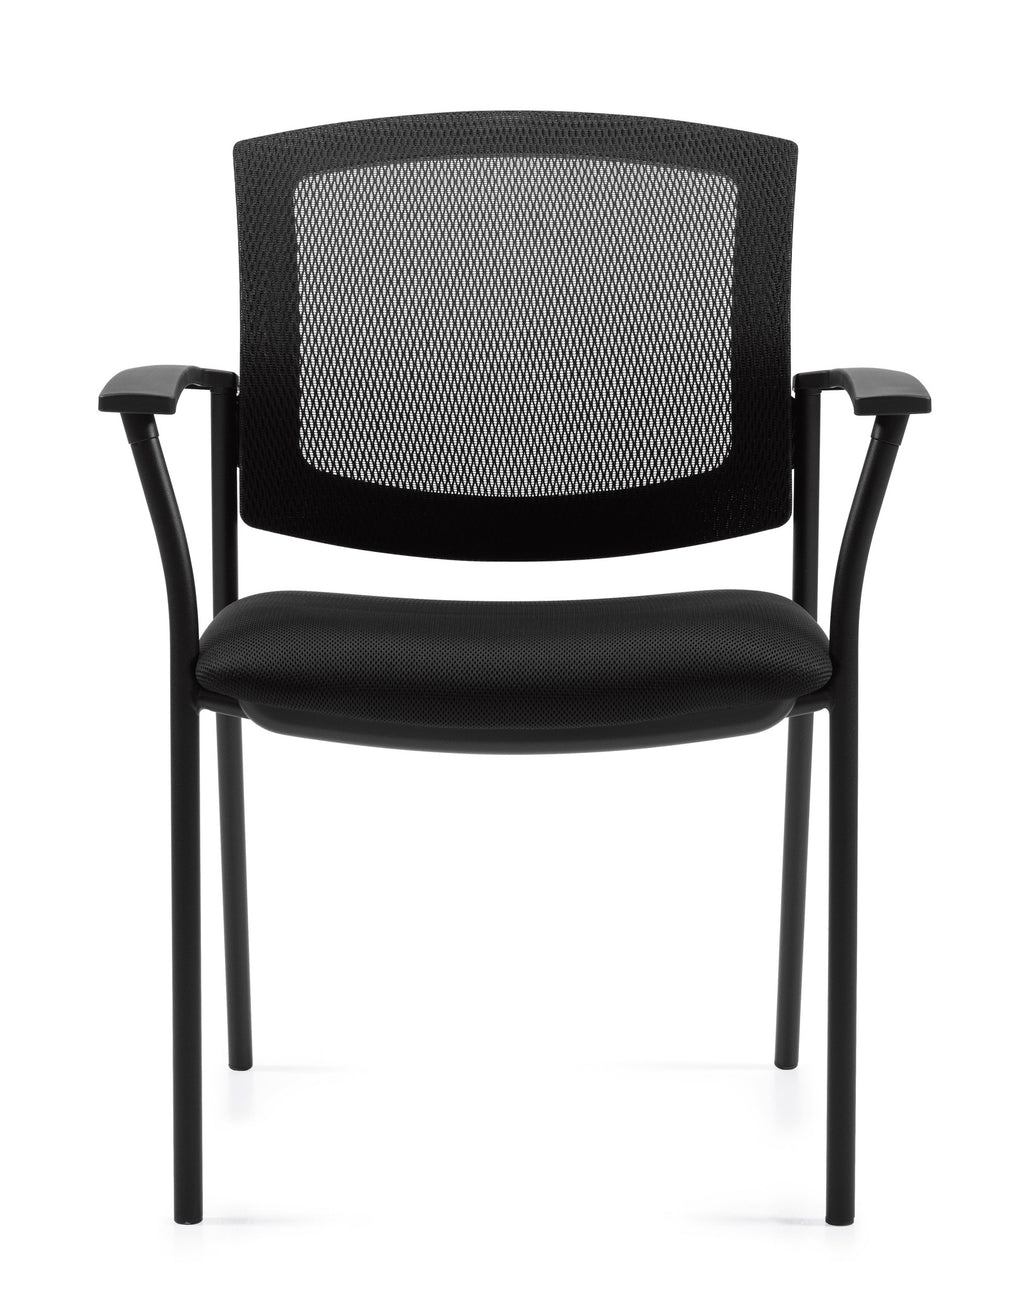 OTG 2809 Guest Chair